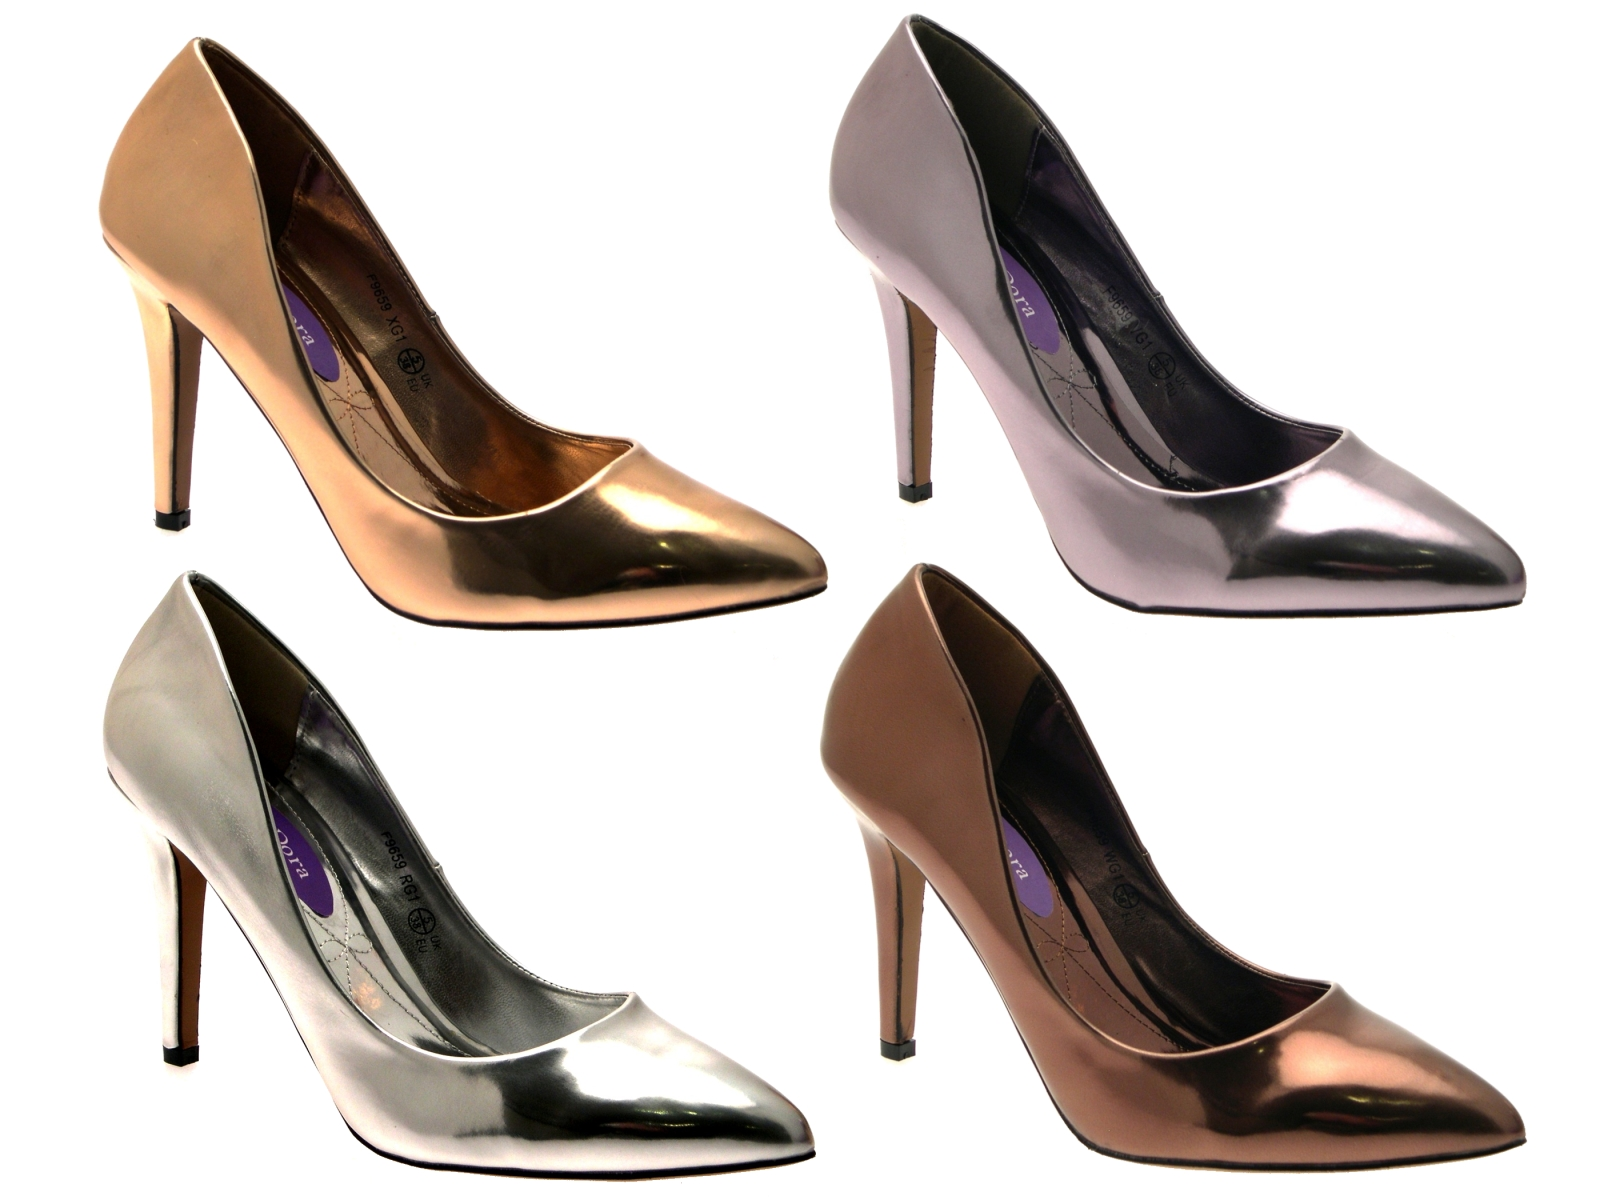 Womens-Metallic-Pointed-Toe-Court-Stiletto-High-Heels-Ladies-Work-Office-Shoes thumbnail 25